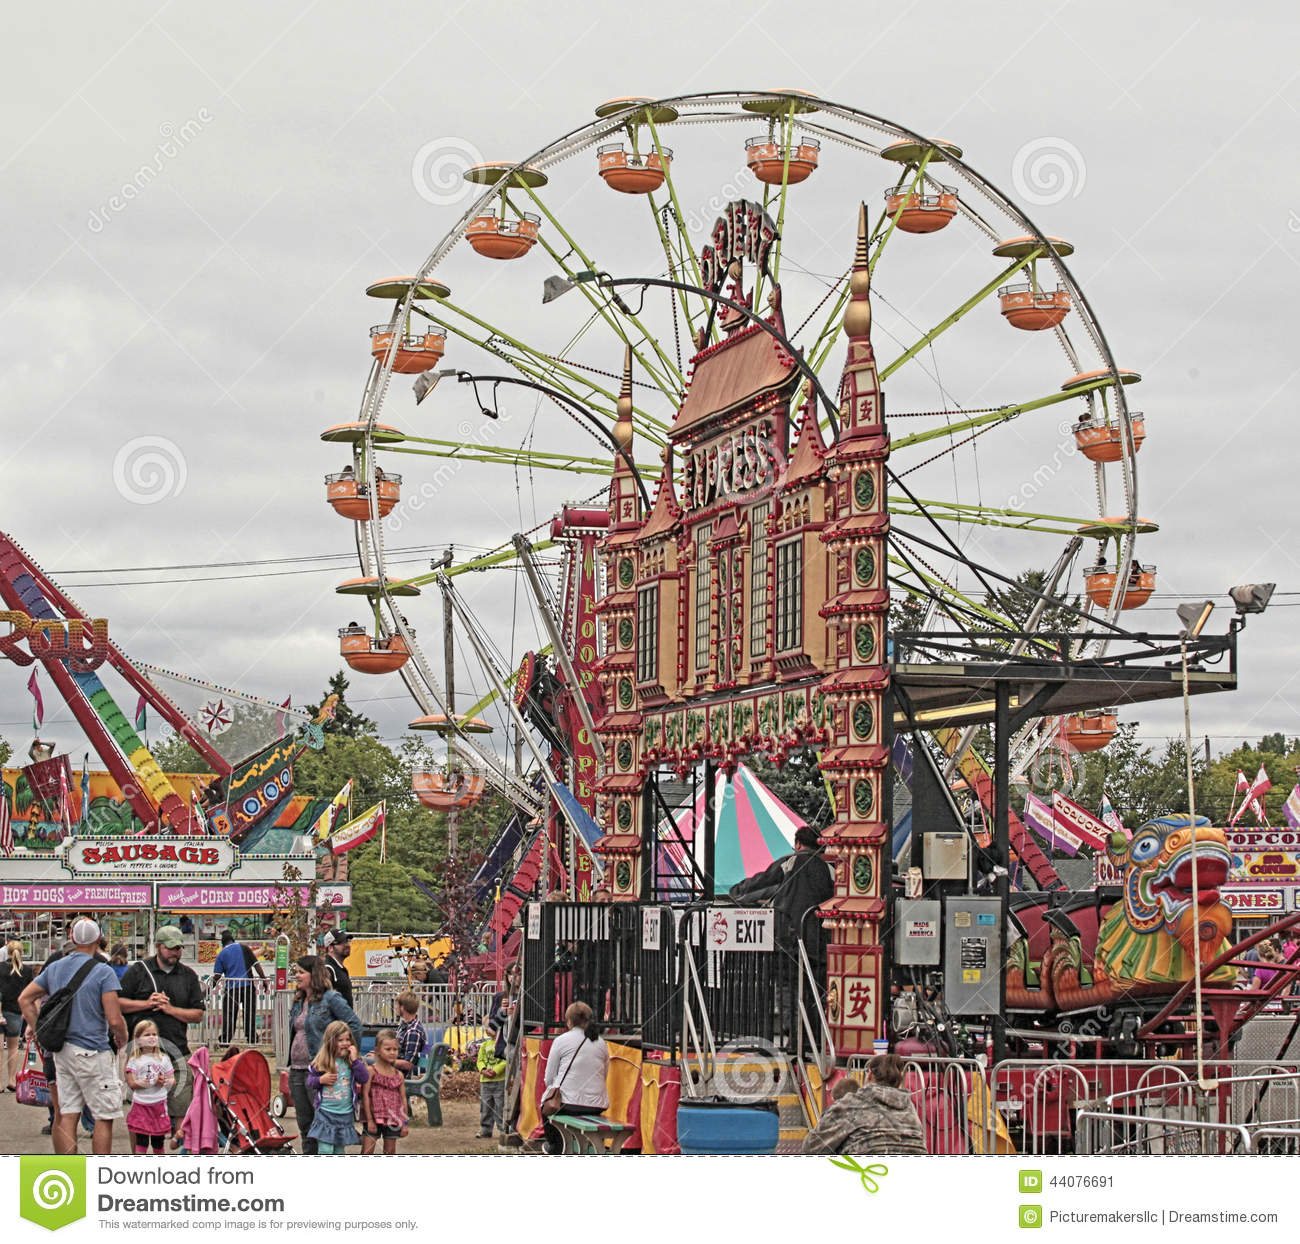 ride www imgarcade com online image arcade state fair ferris wheel and carnival editorial photo